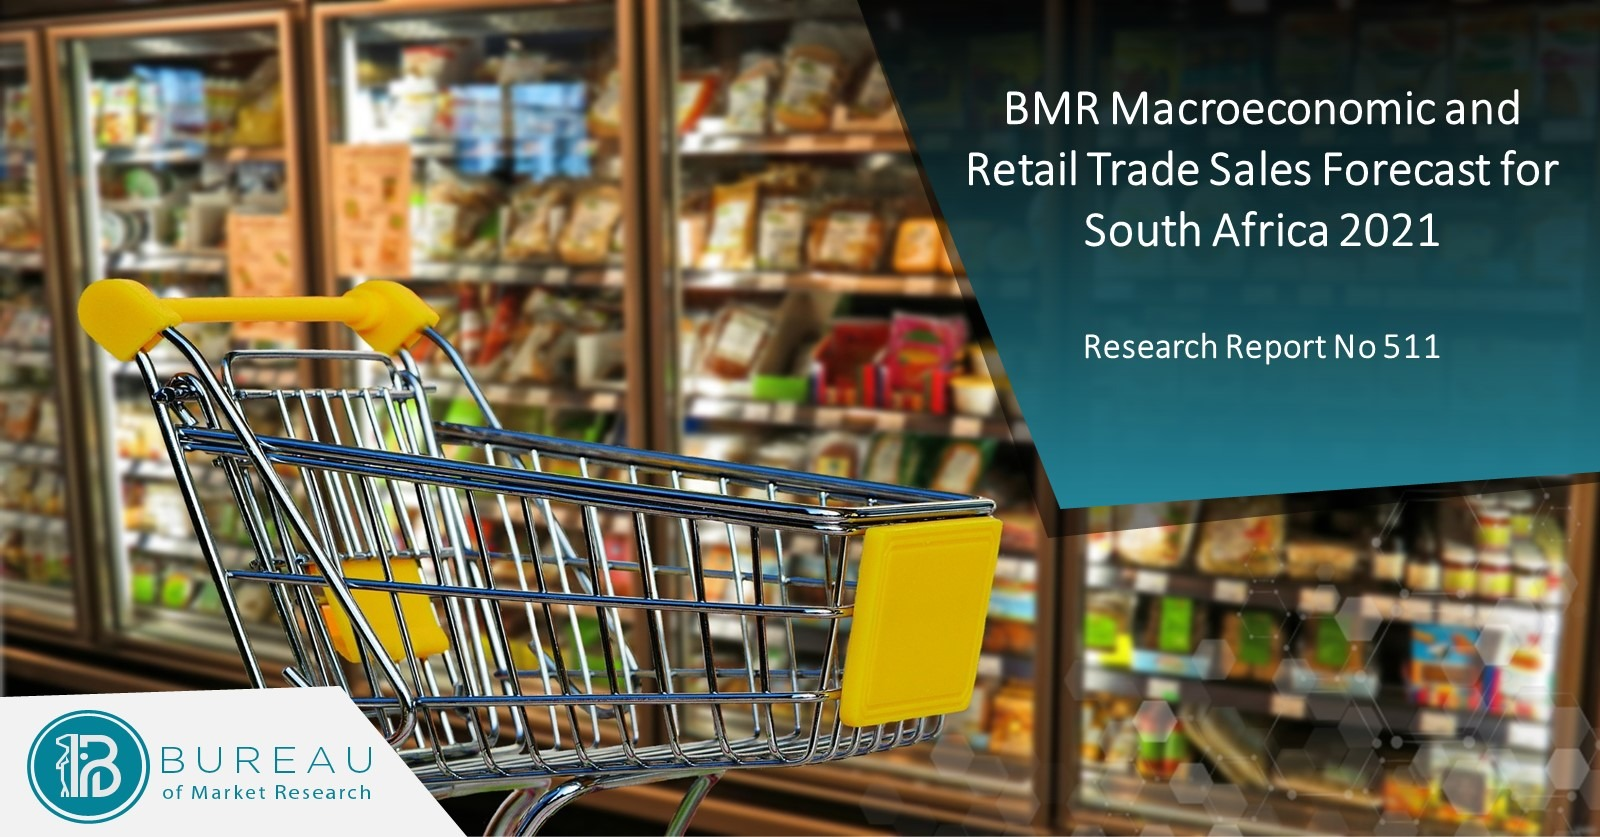 BMR Macroeconomic and Retail Trade Sales Forecast for South Africa 2021